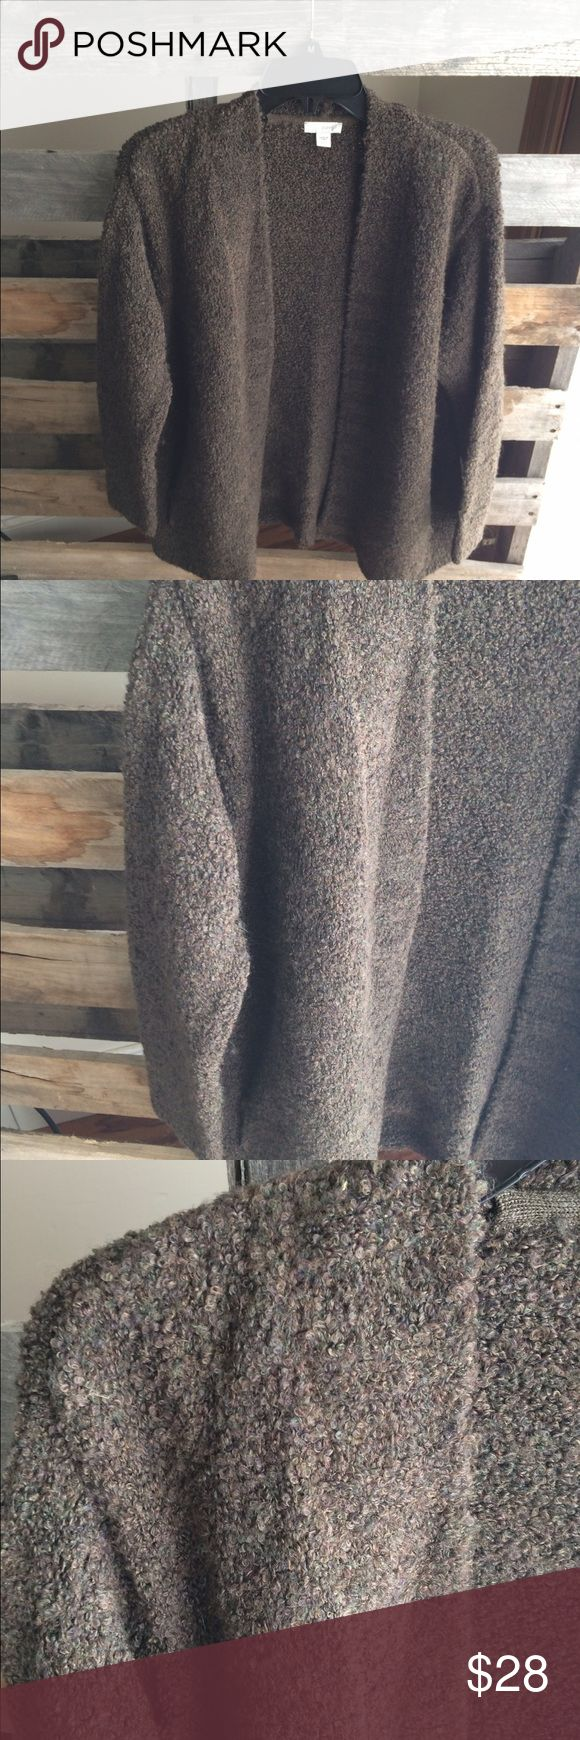 Pure Jill open front cardigan PS brown GUC Smoke and pet free home. Bundle discount 20% J. Jill Sweaters Cardigans